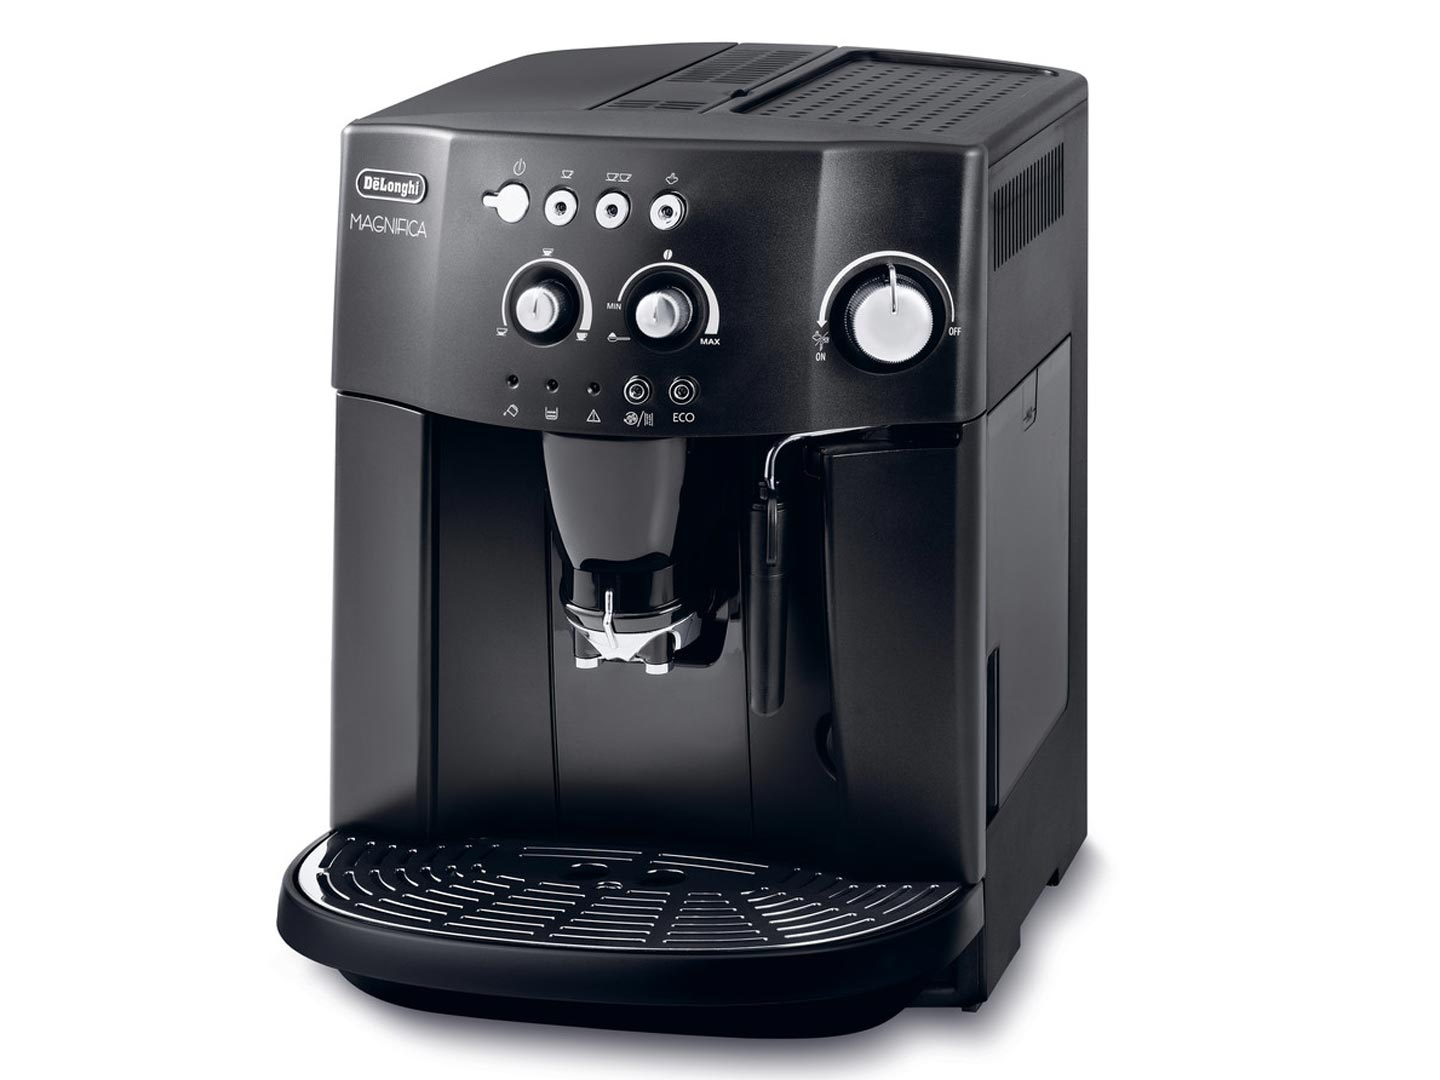 Do you have a question about the DeLonghi Magnifica S ECAM 22.110.SB